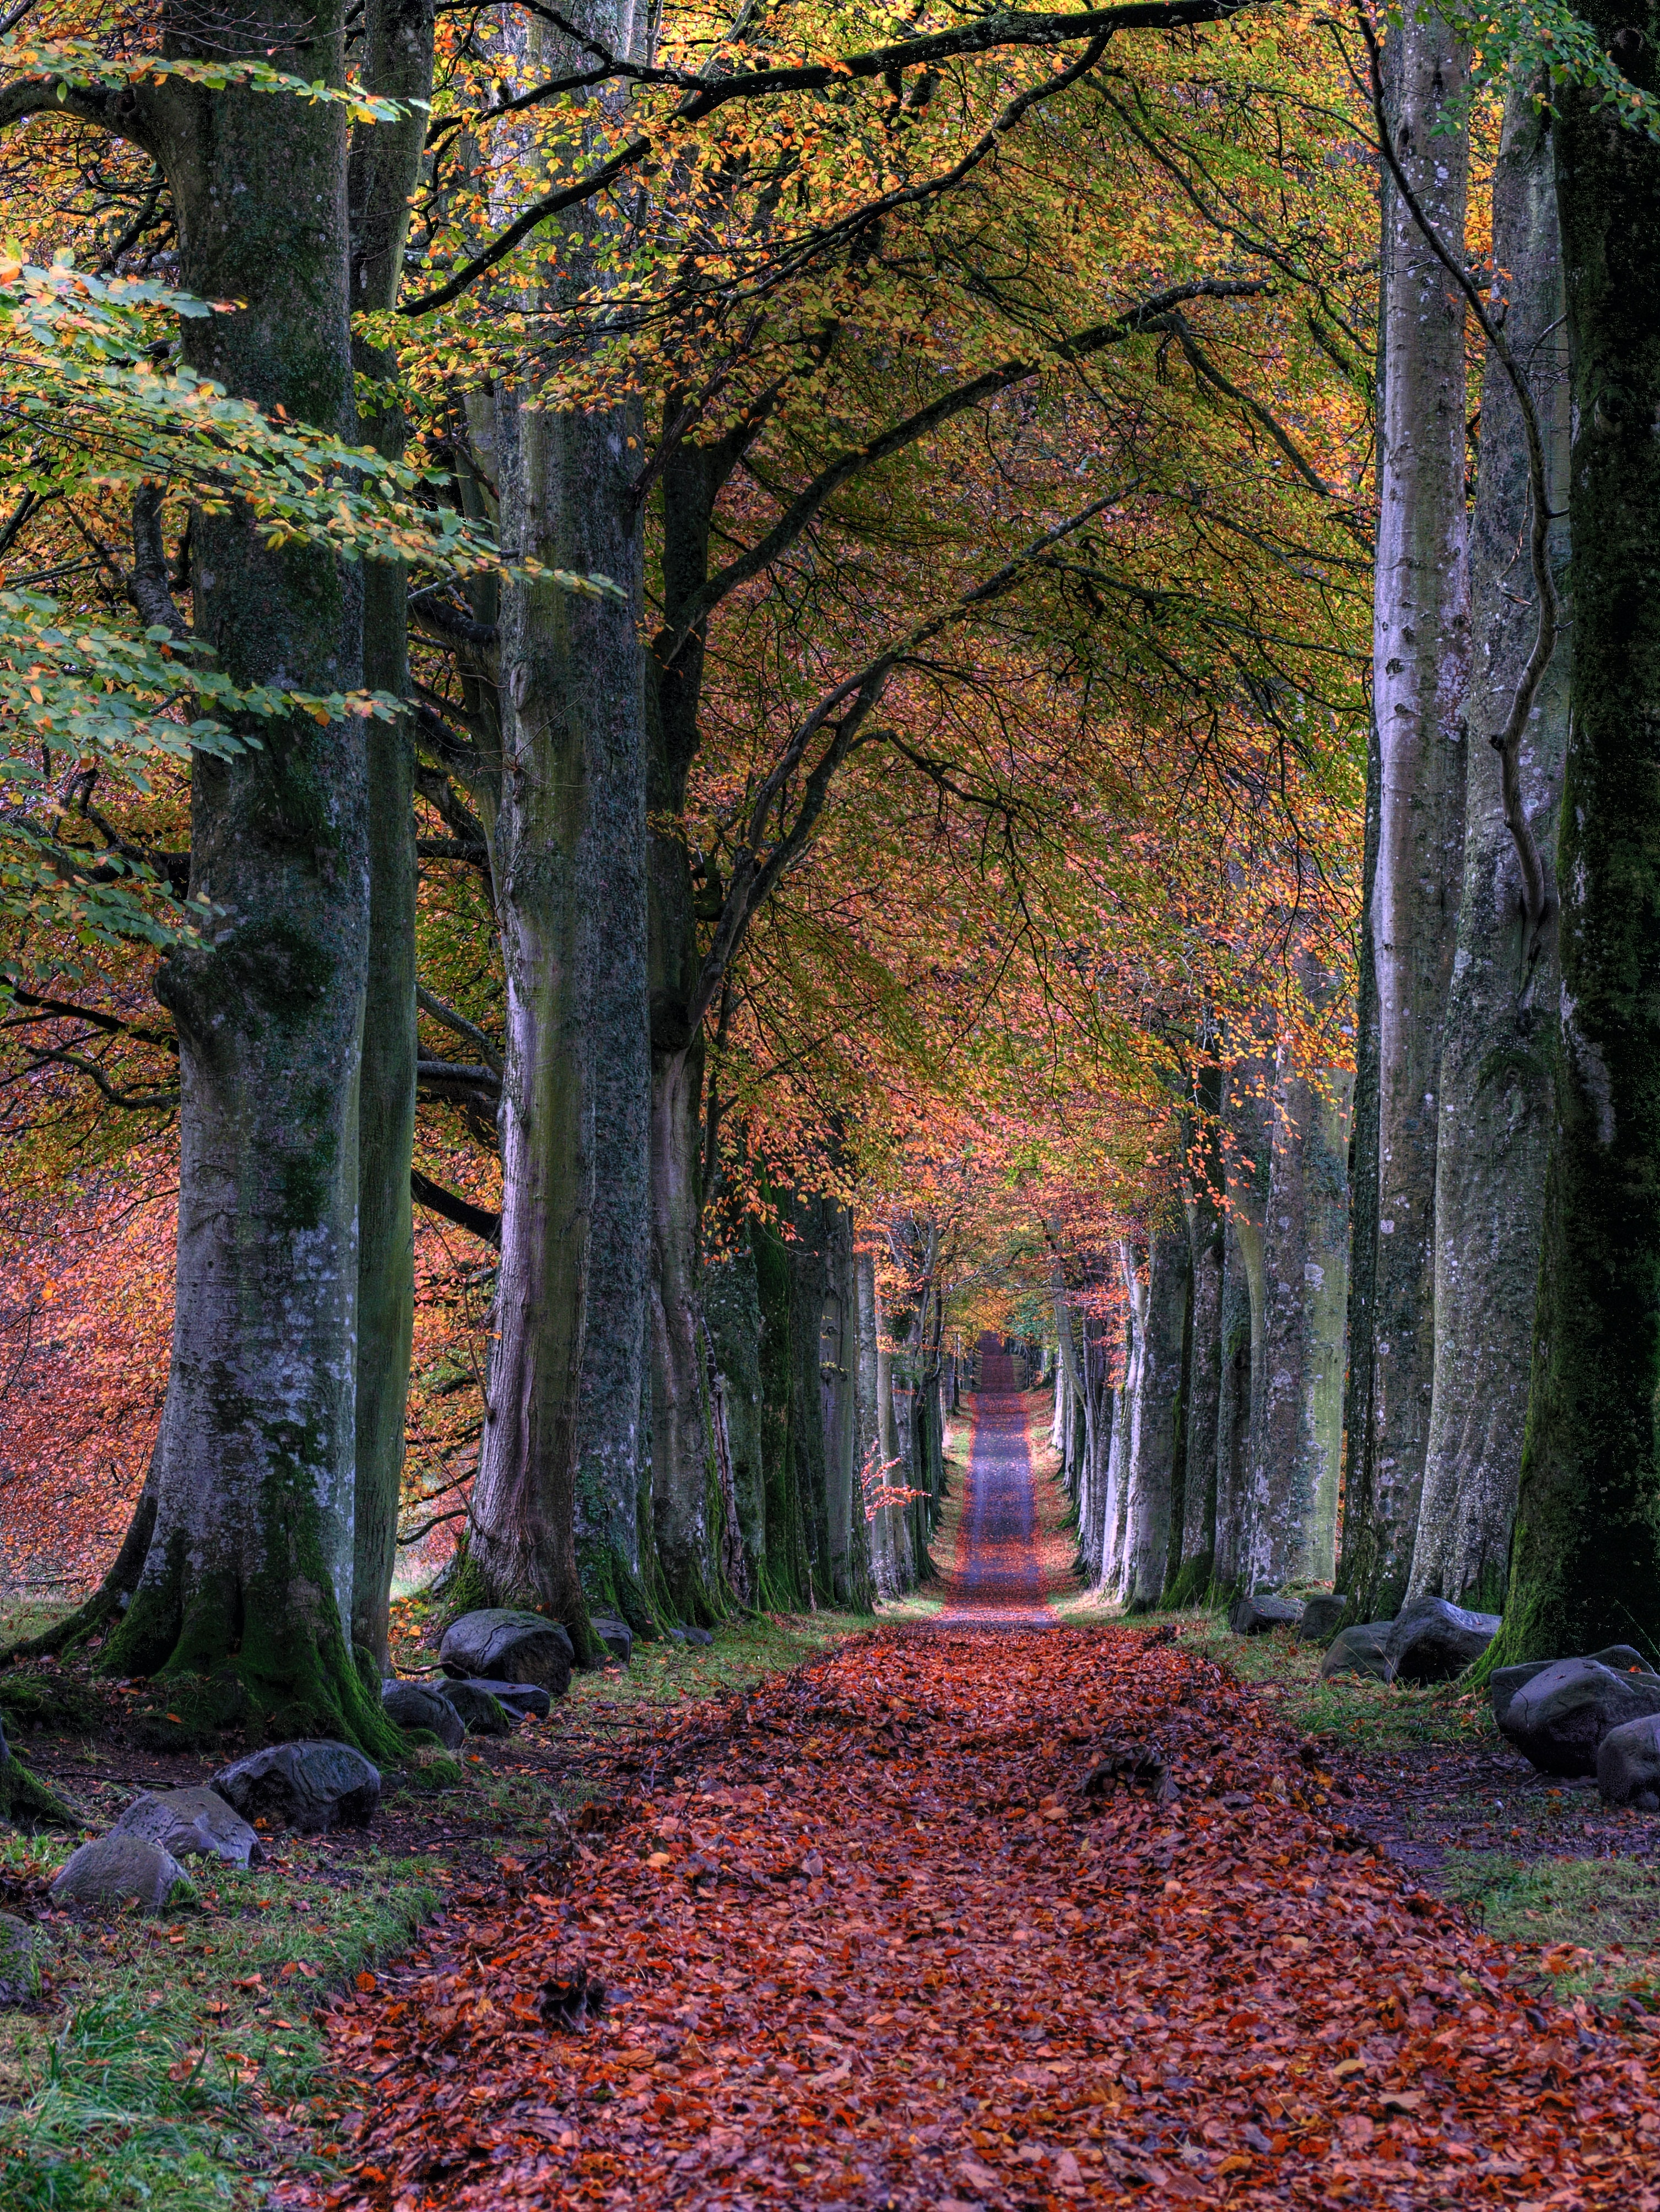 A pathway through trees with autumn leaves on the ground